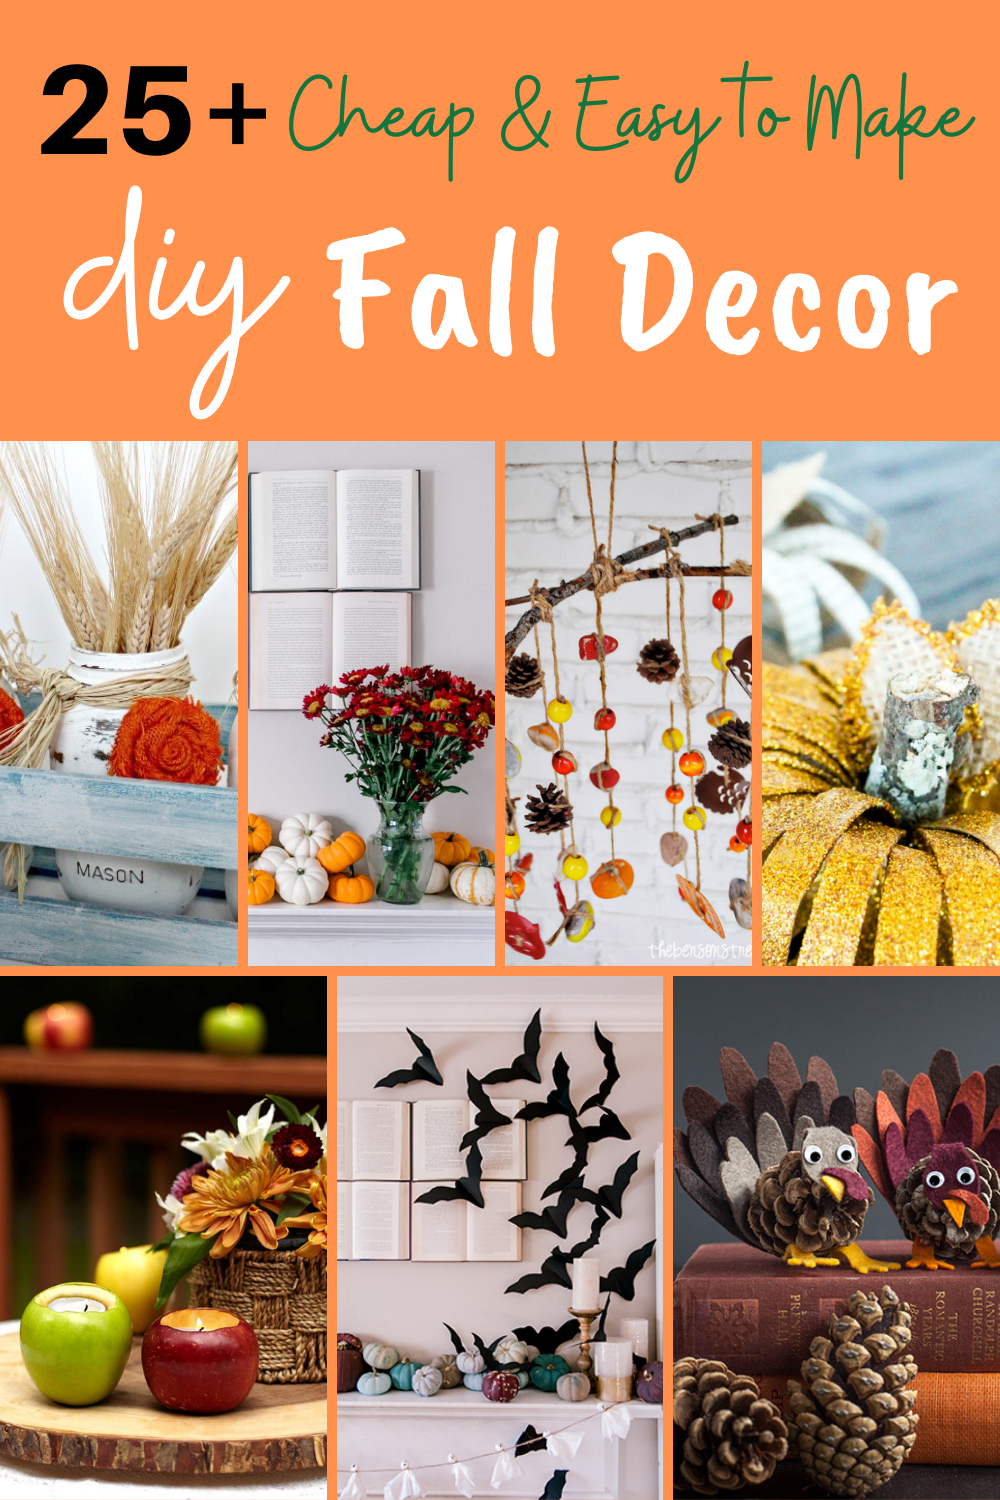 25+ cheap and easy to make diy fall decor